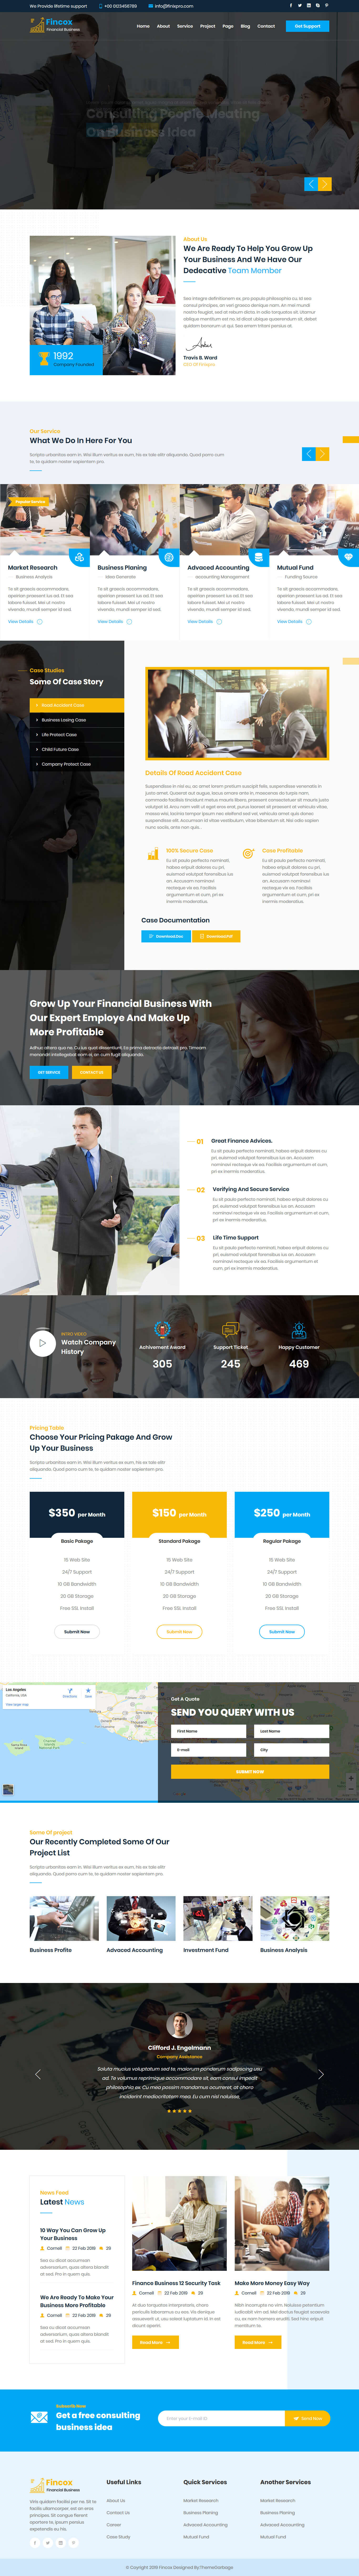 fincox-financial-&-corporate-business-html5-template-skybootstrap